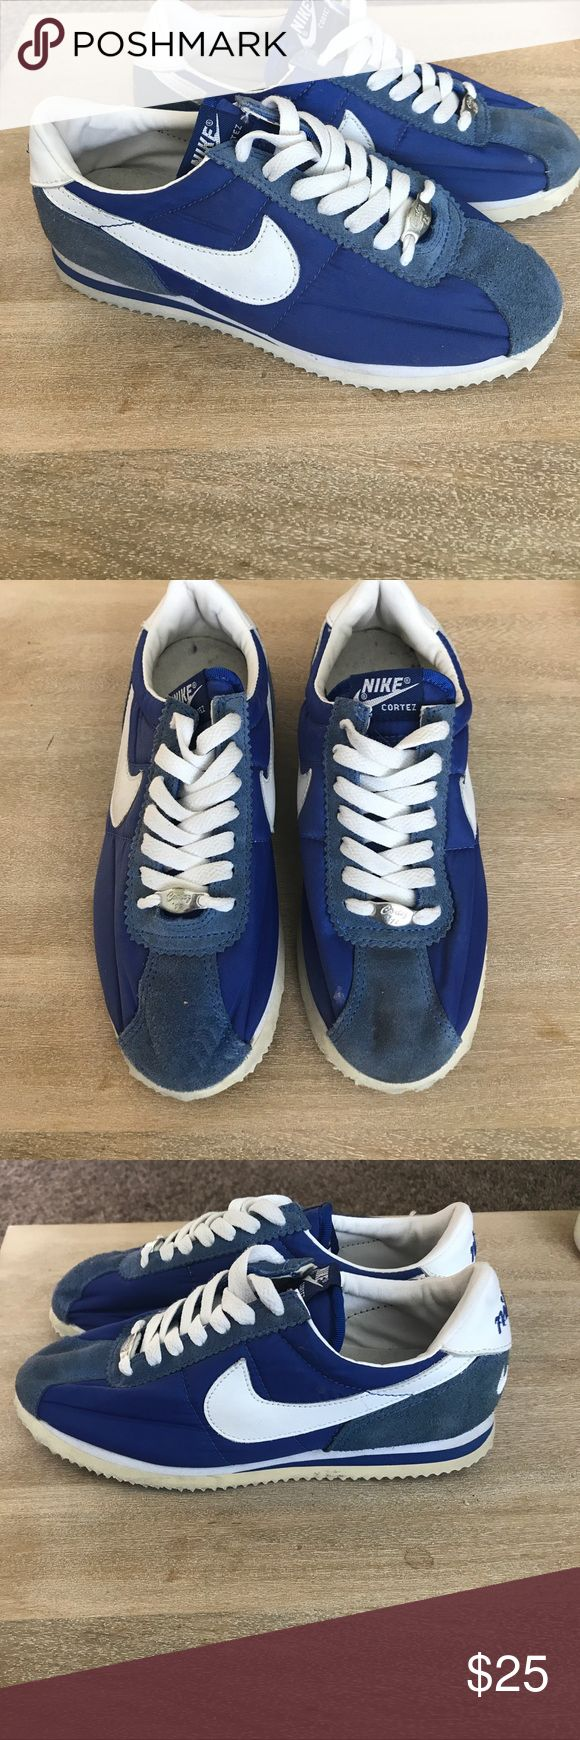 Nike Cortez shoes Royal blue Nike Cortez women's shoes. Used. Only worn a few times. Been in storage for years. Nike Shoes Athletic Shoes